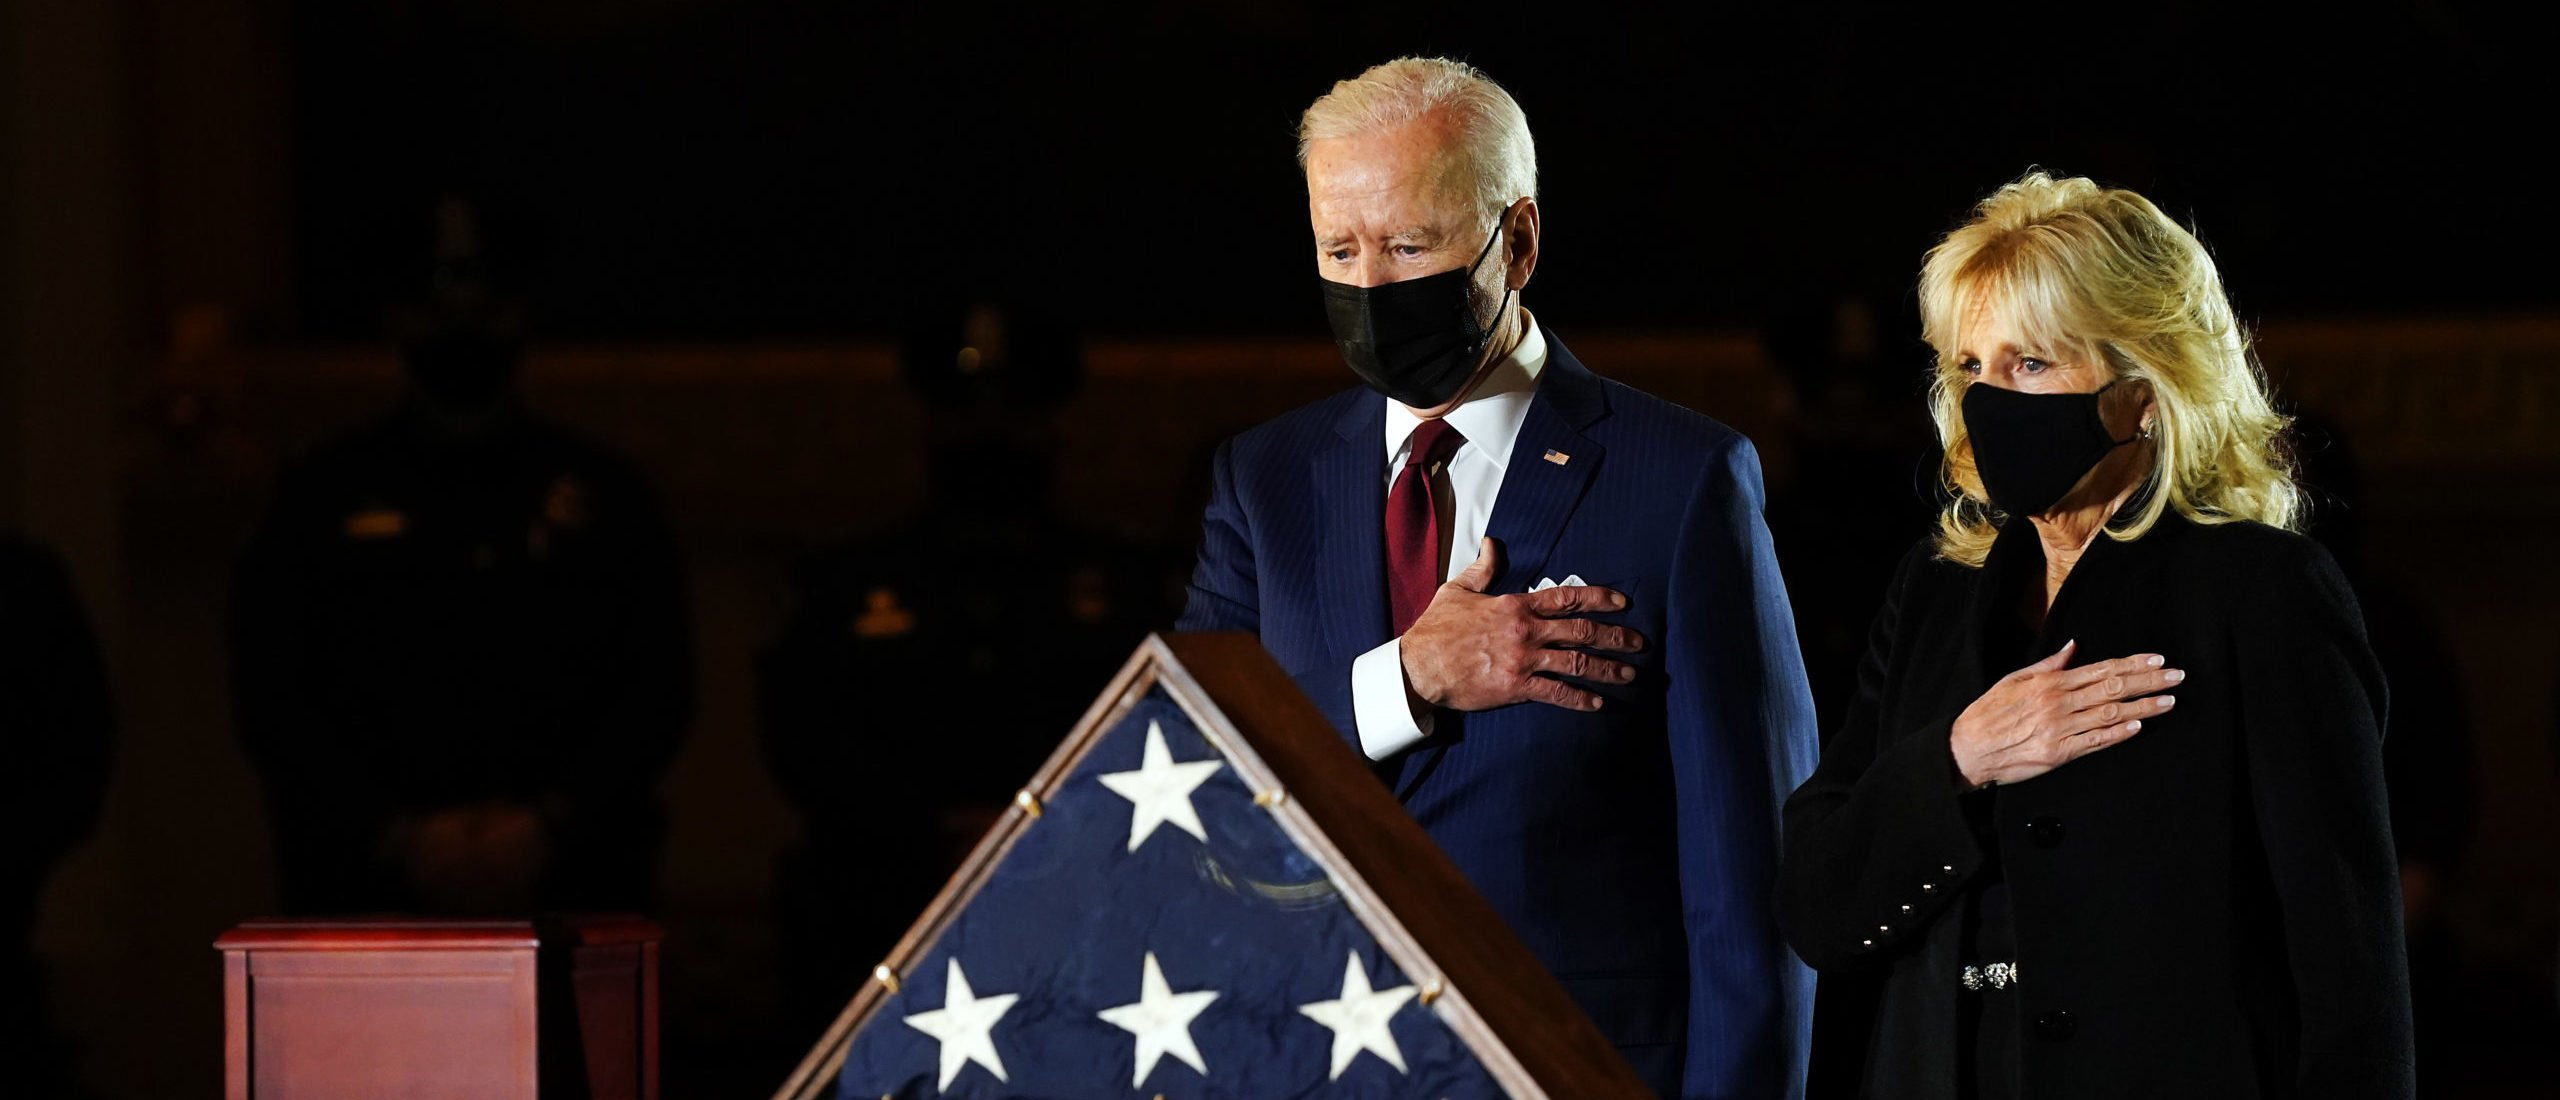 WASHINGTON, DC - FEBRUARY 02: President Joe Biden and first lady Dr. Jill Biden pay their respects to U.S. Capitol officer Brian D. Sicknick as he lies in honor in the U.S. Capitol on February 2, 2021 in Washington, DC. Officer Sicknick died as a result of injuries he sustained during the January 6 attack on the U.S. Capitol. He will lie in honor until February 3 and then be buried at Arlington National Cemetery. (Photo by Erin Schaff-Pool/Getty Images)